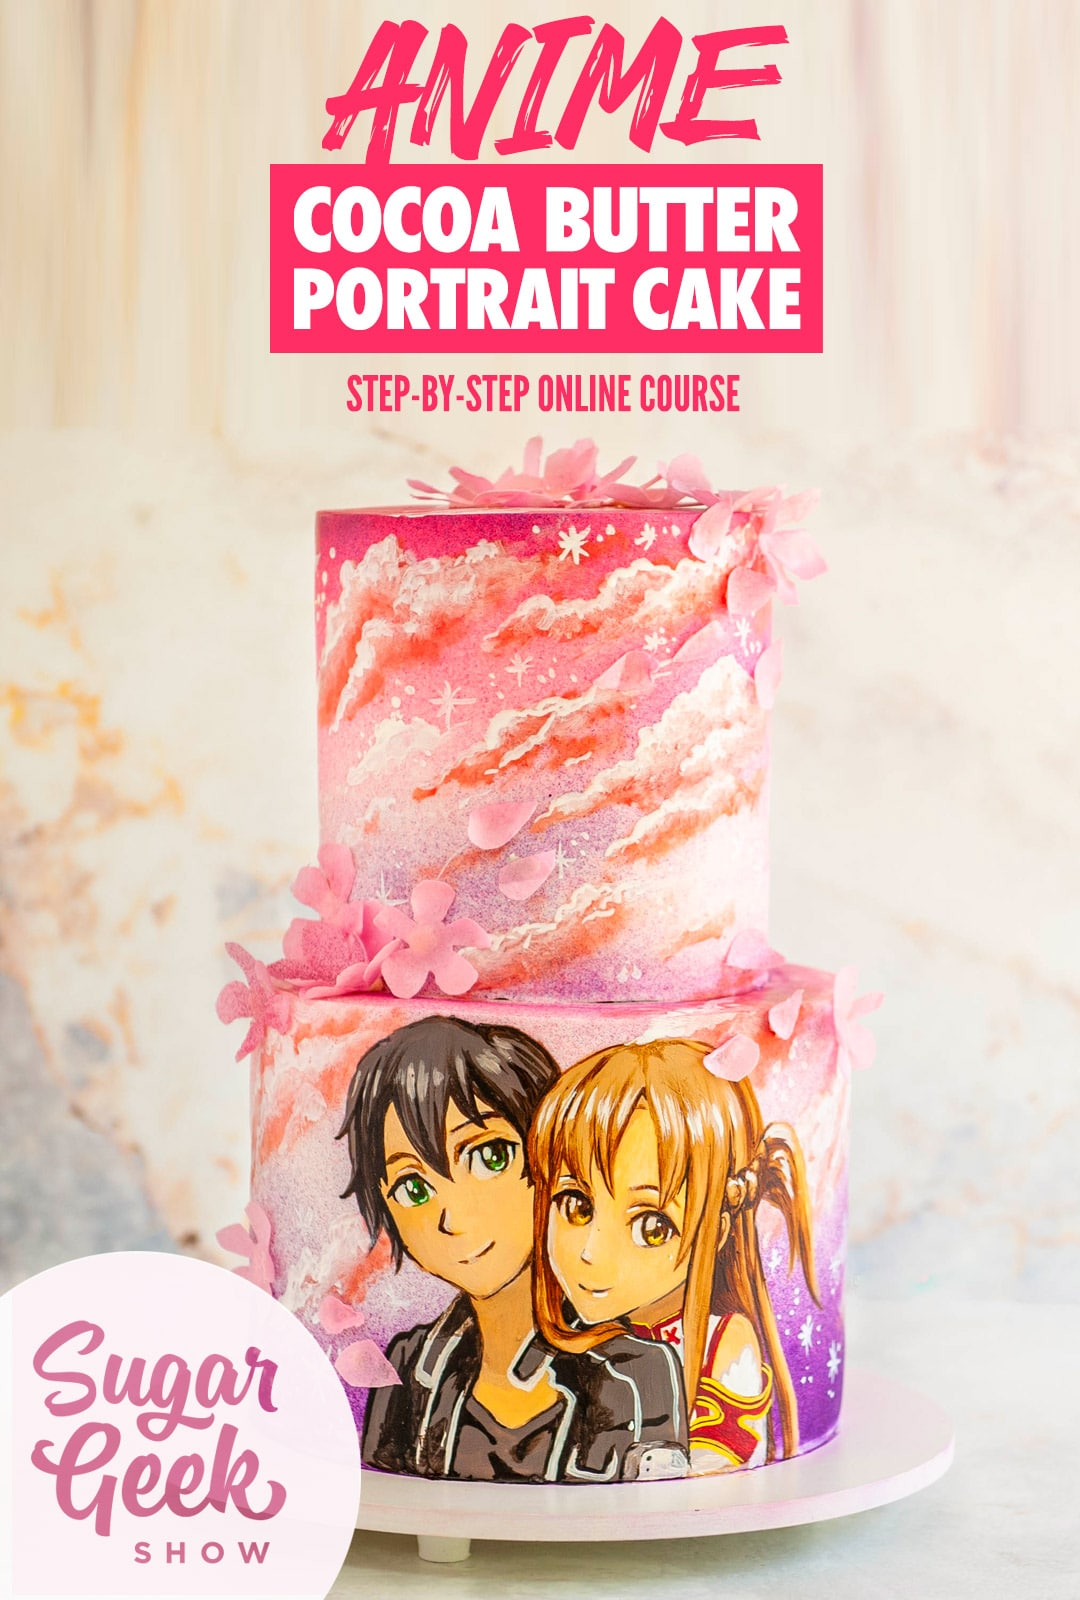 Stacked cake with airbrushed color, cocoa butter painted clouds and a portrait of anime characters painted on the side